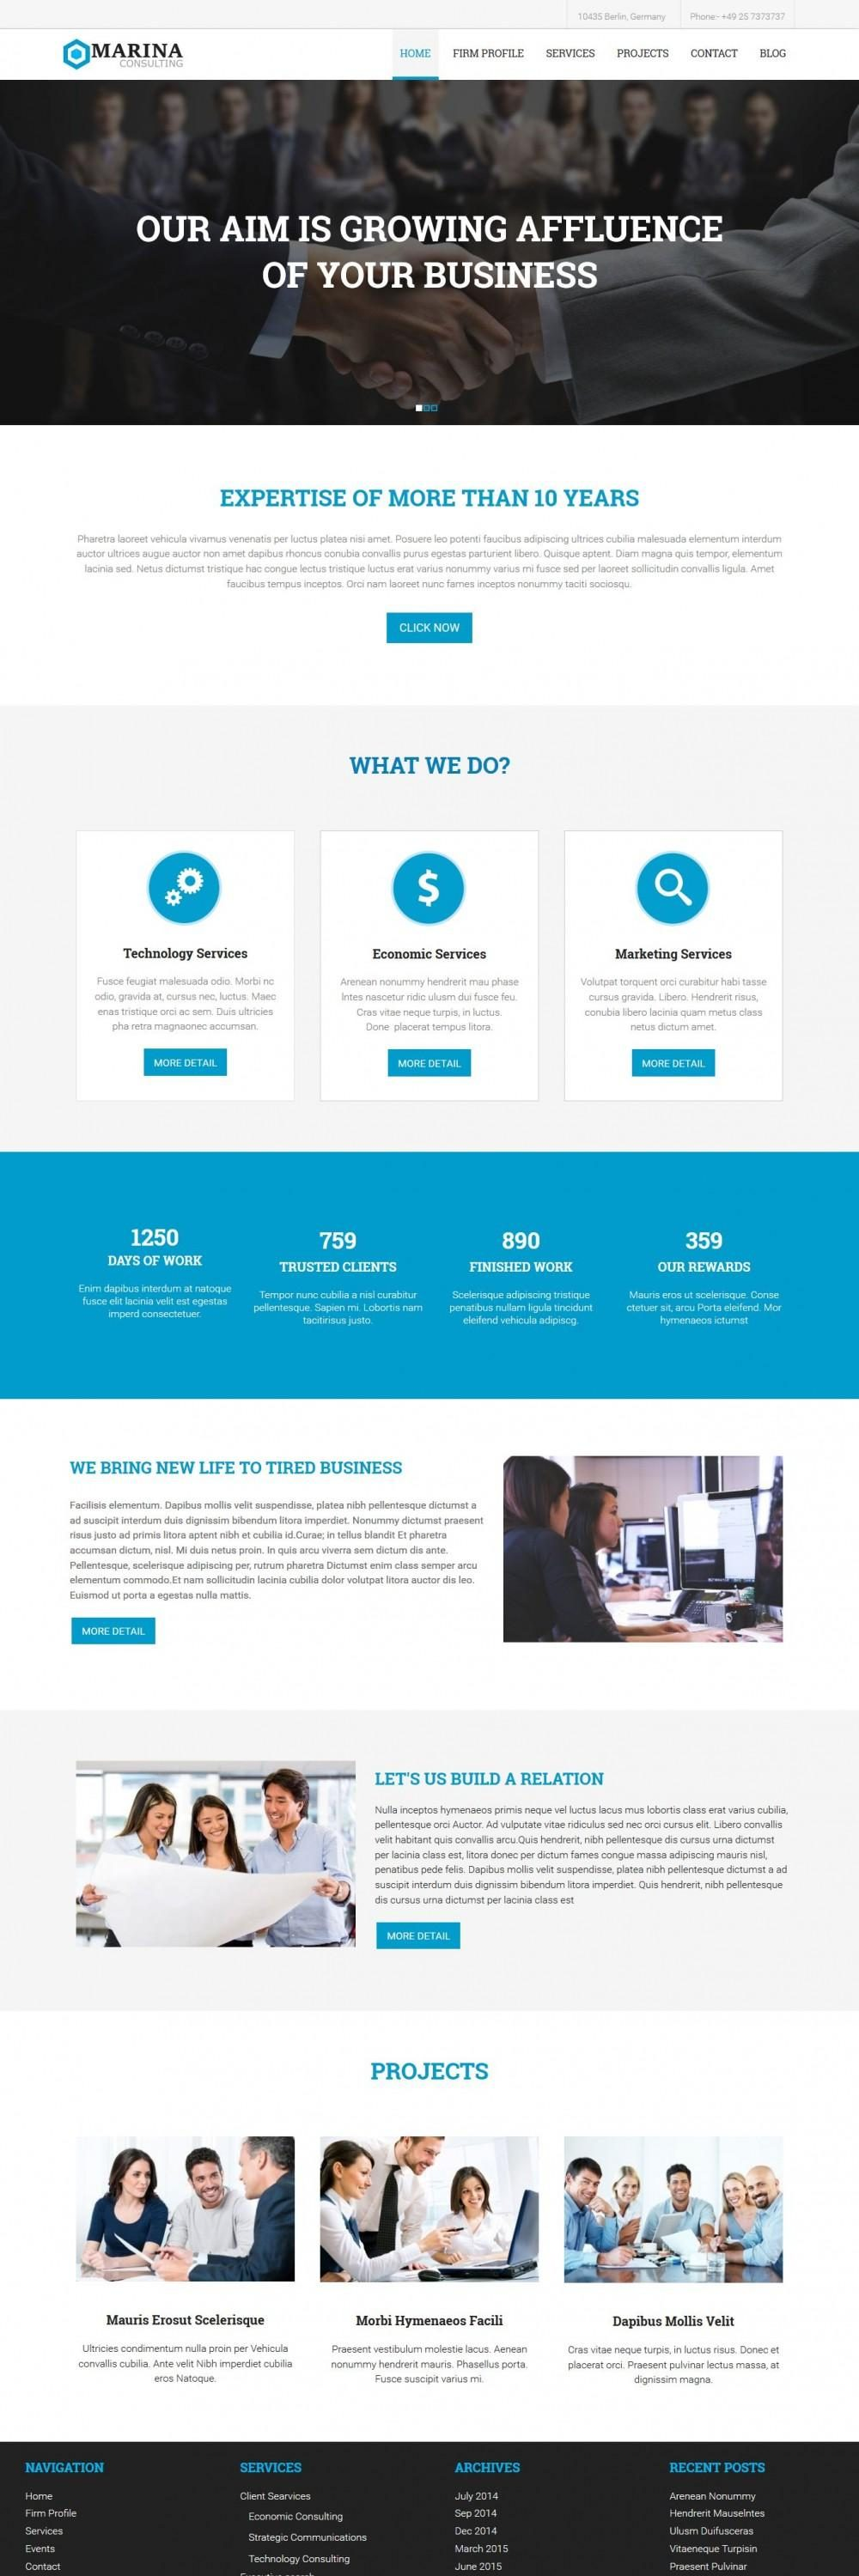 Marina Business Marketing Consultant Drupal Theme